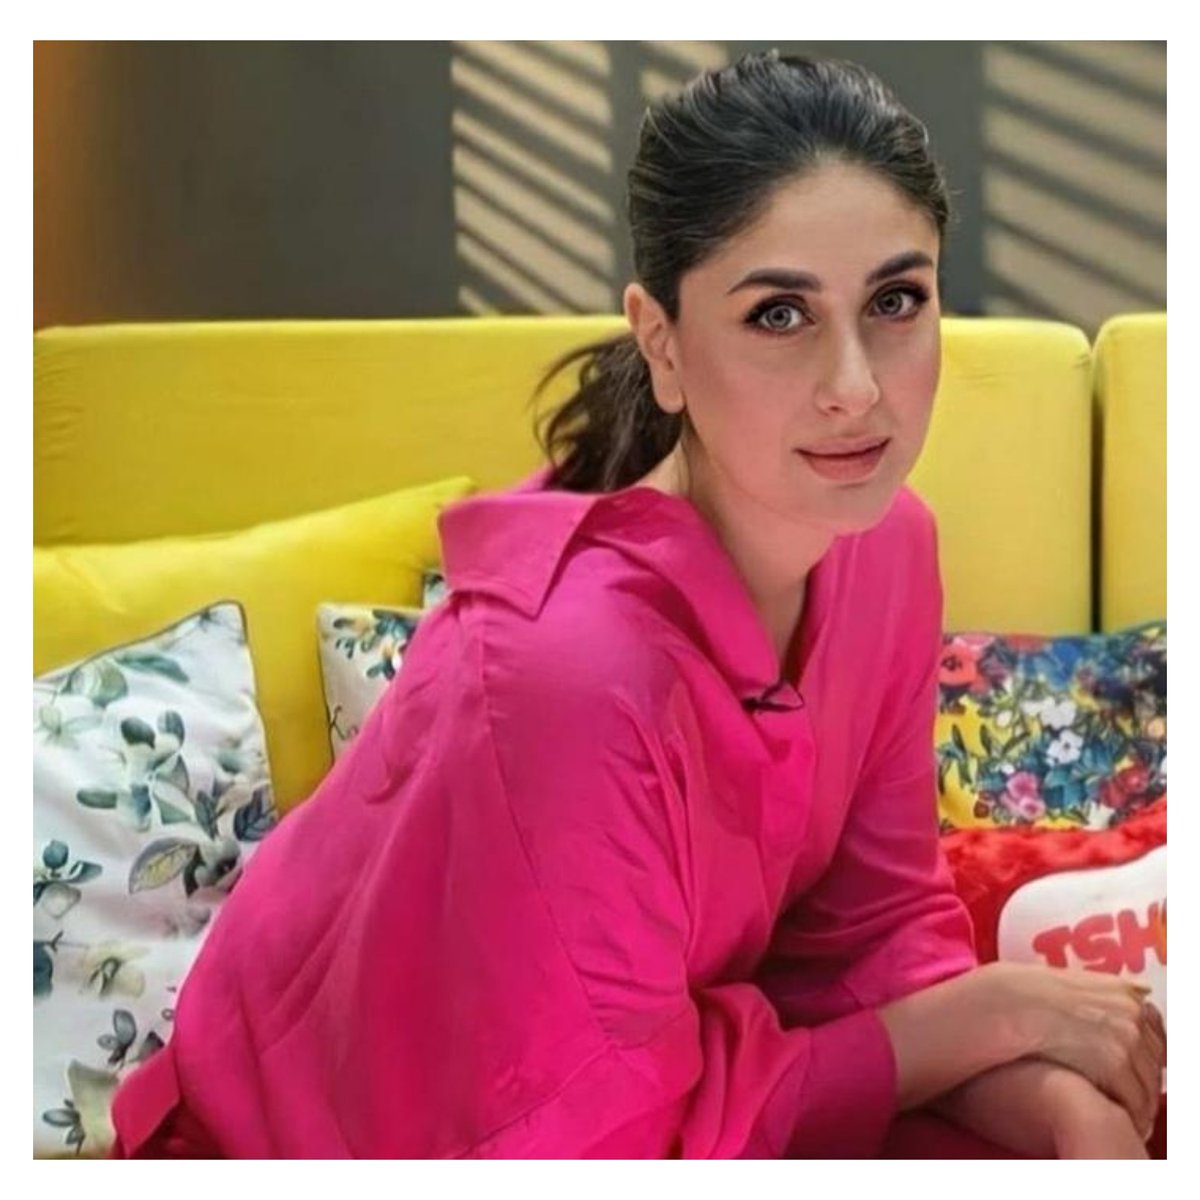 That eye glam is mind blowing💕 #SavleenManchanda for #KareenaKapoorKhan The murky lashes with soft smoky look on the blush foundation is such a classic🌸  #GlamLook #EyeLashes #Strut24x7